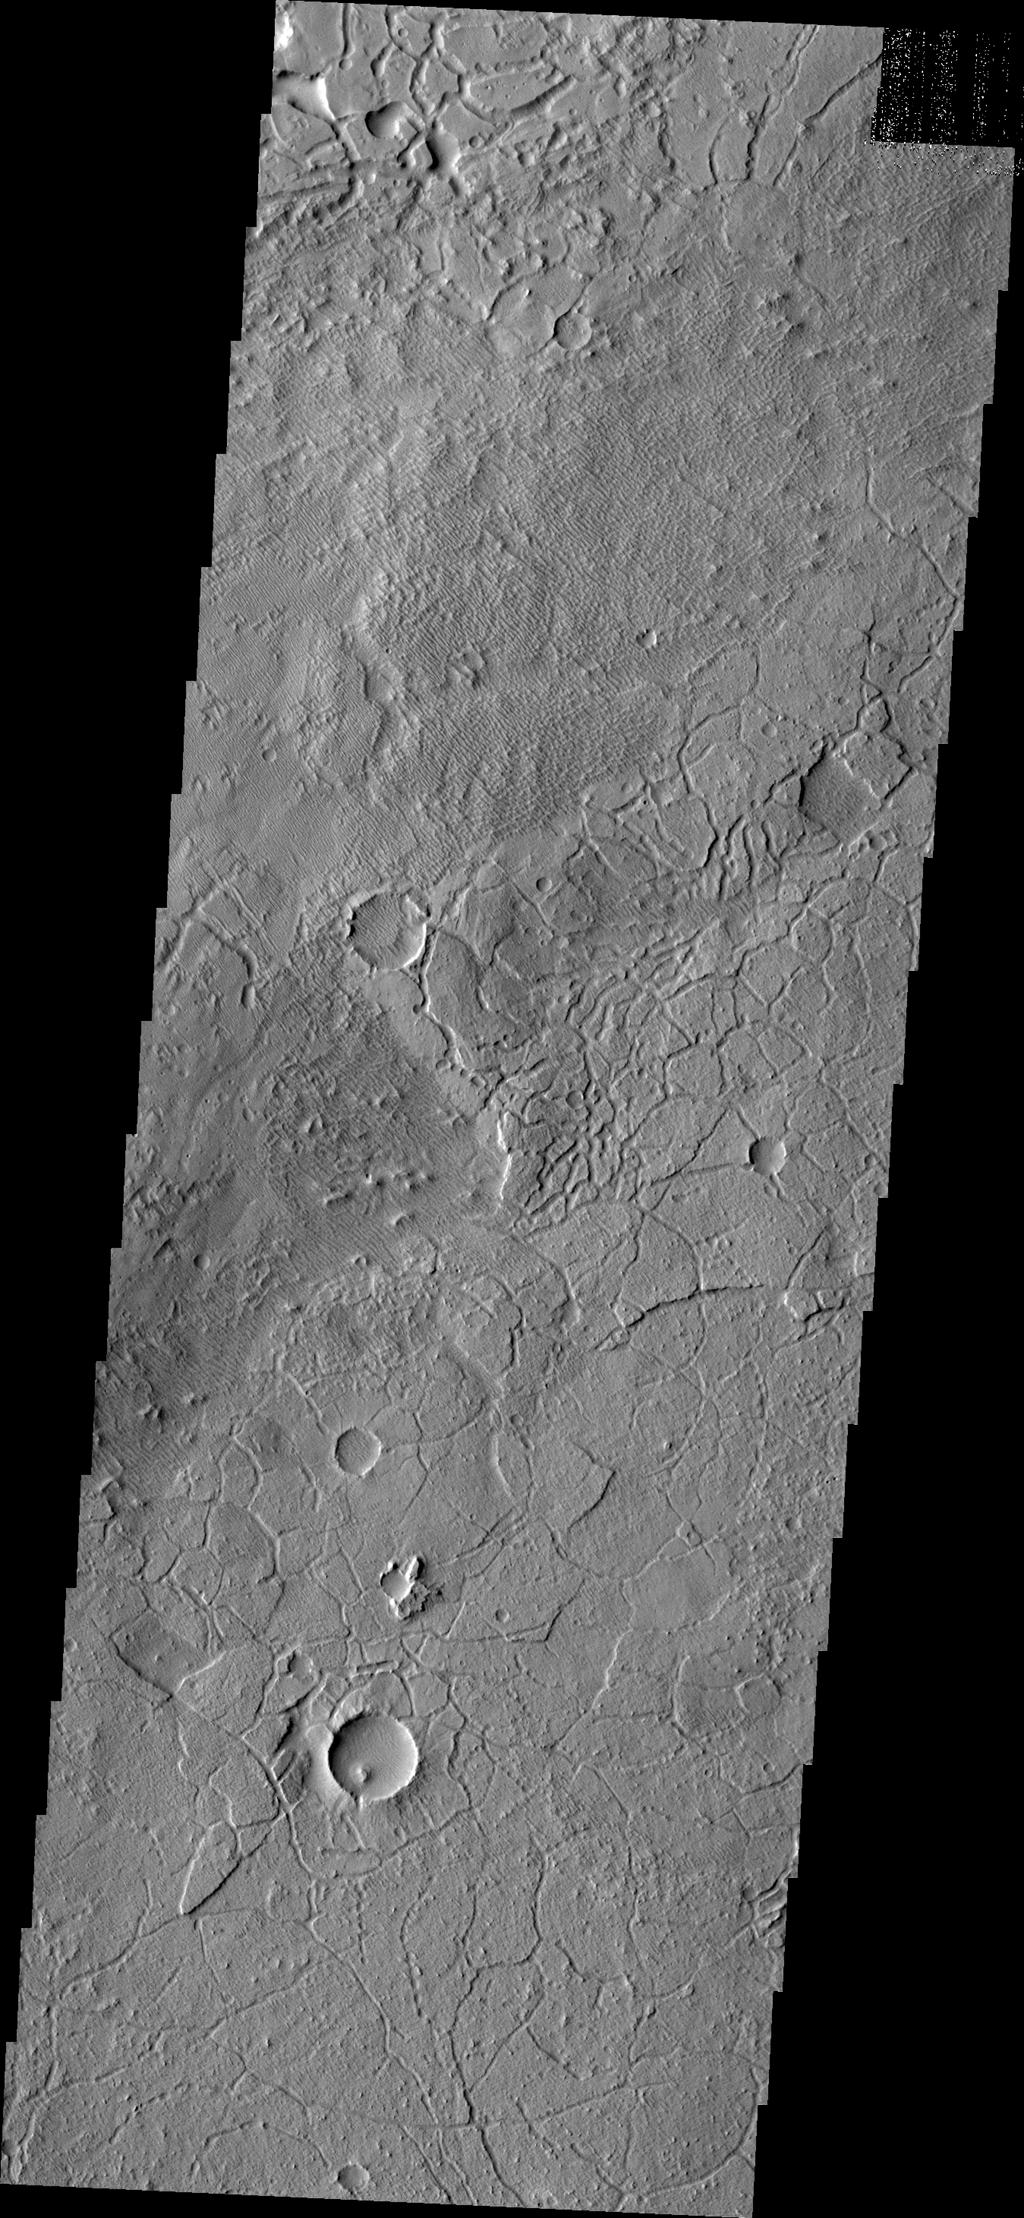 Avenus Colles is a region of 'hills' separated by arcuate fractures. These features are the margin between the southern highlands and Elysium Planitia to the north. This image was captured by NASA's Mars Odyssey.